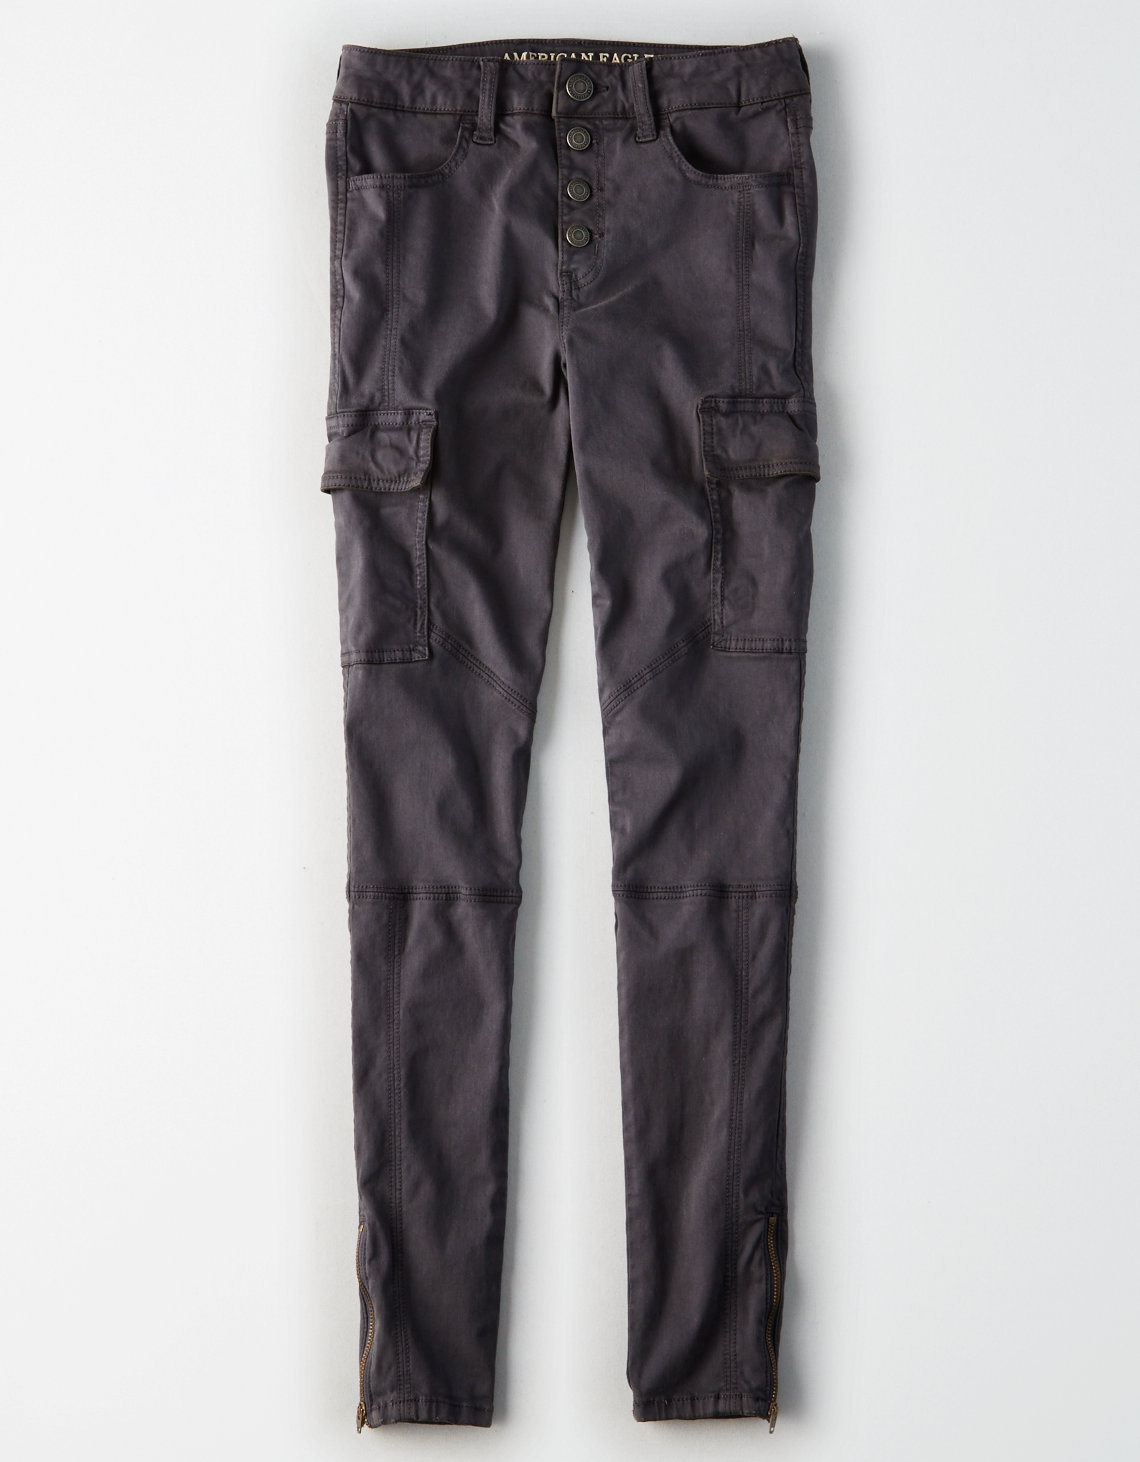 AE Denim X Hi-Rise Jegging